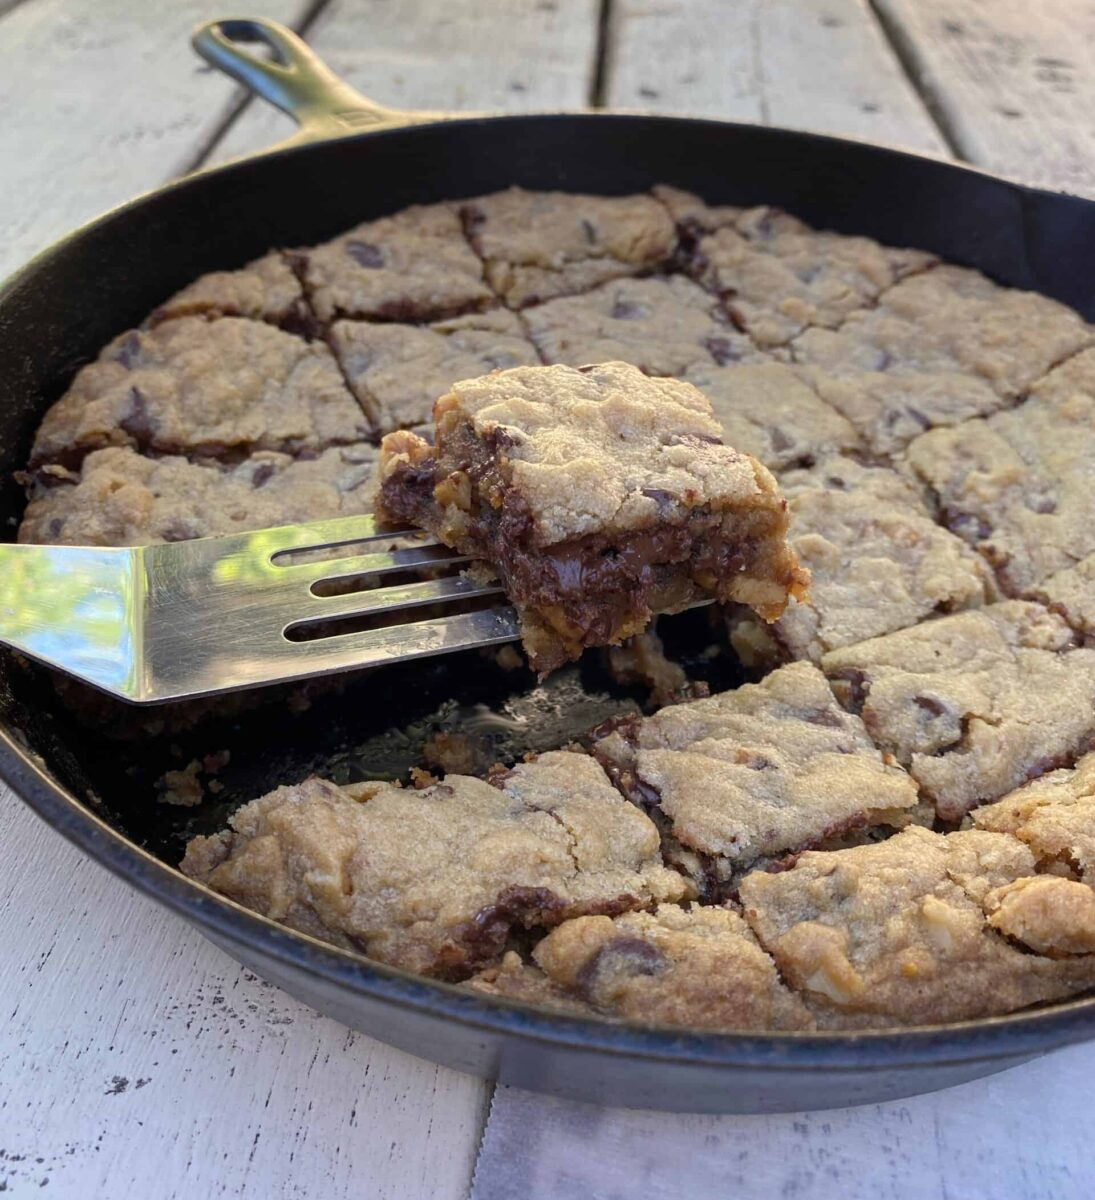 Chocolate chip bar cookie on a spatula, lifted out of a cast iron skillet.